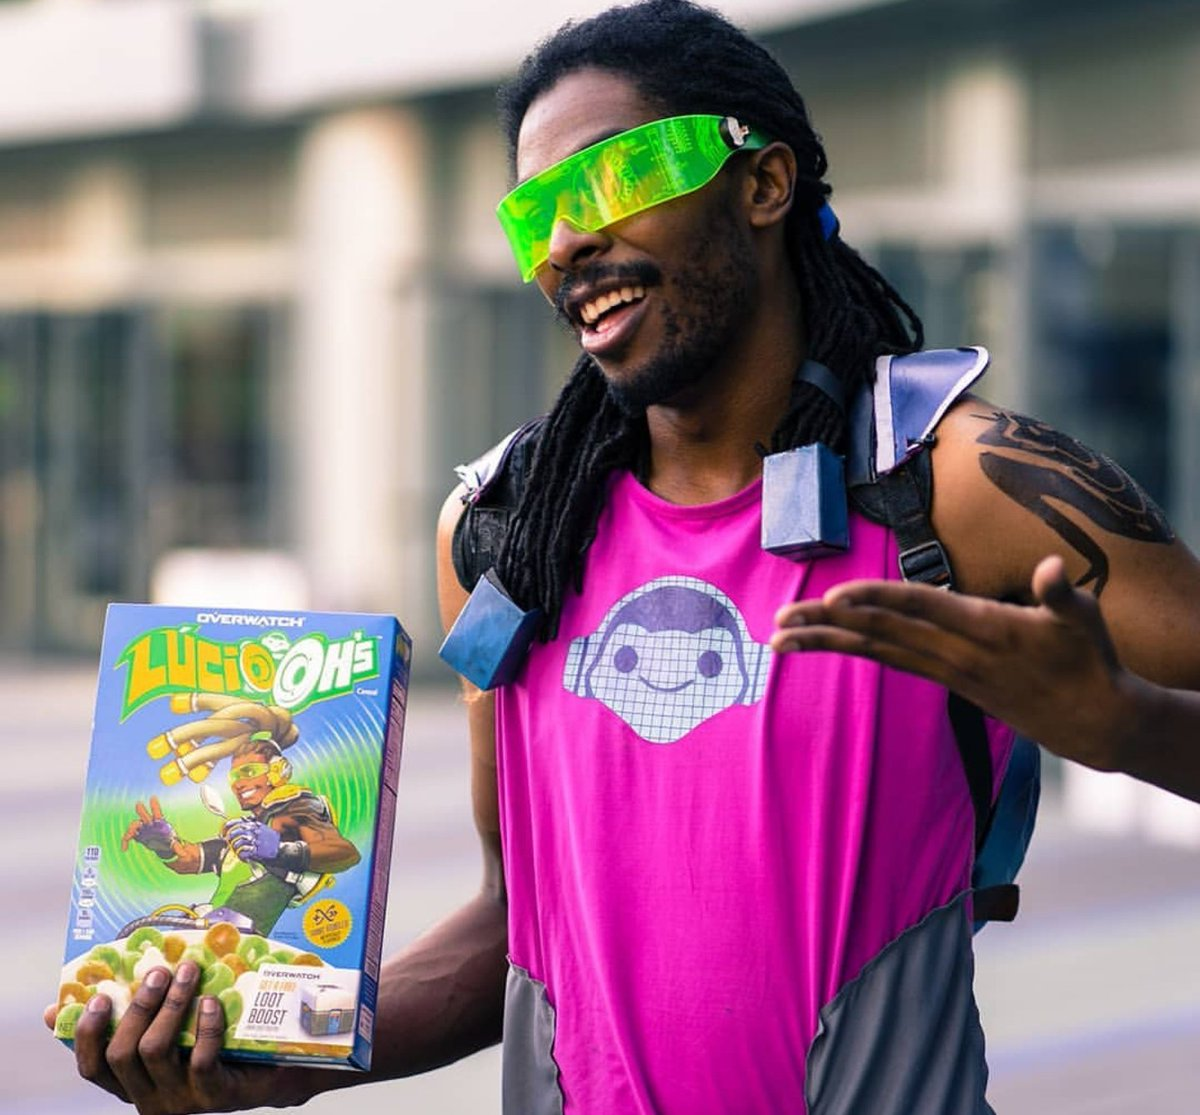 Blizzcon 2018 I was a walking advertisement!! @Blizzard_Ent @PlayOverwatch let me stand outside stores and sell lucio-oh's  😂😂😂😂😂 #luciocereal #lucioohs #luciocommercial #blizzcon #blizzcon2018 #luciocosplay